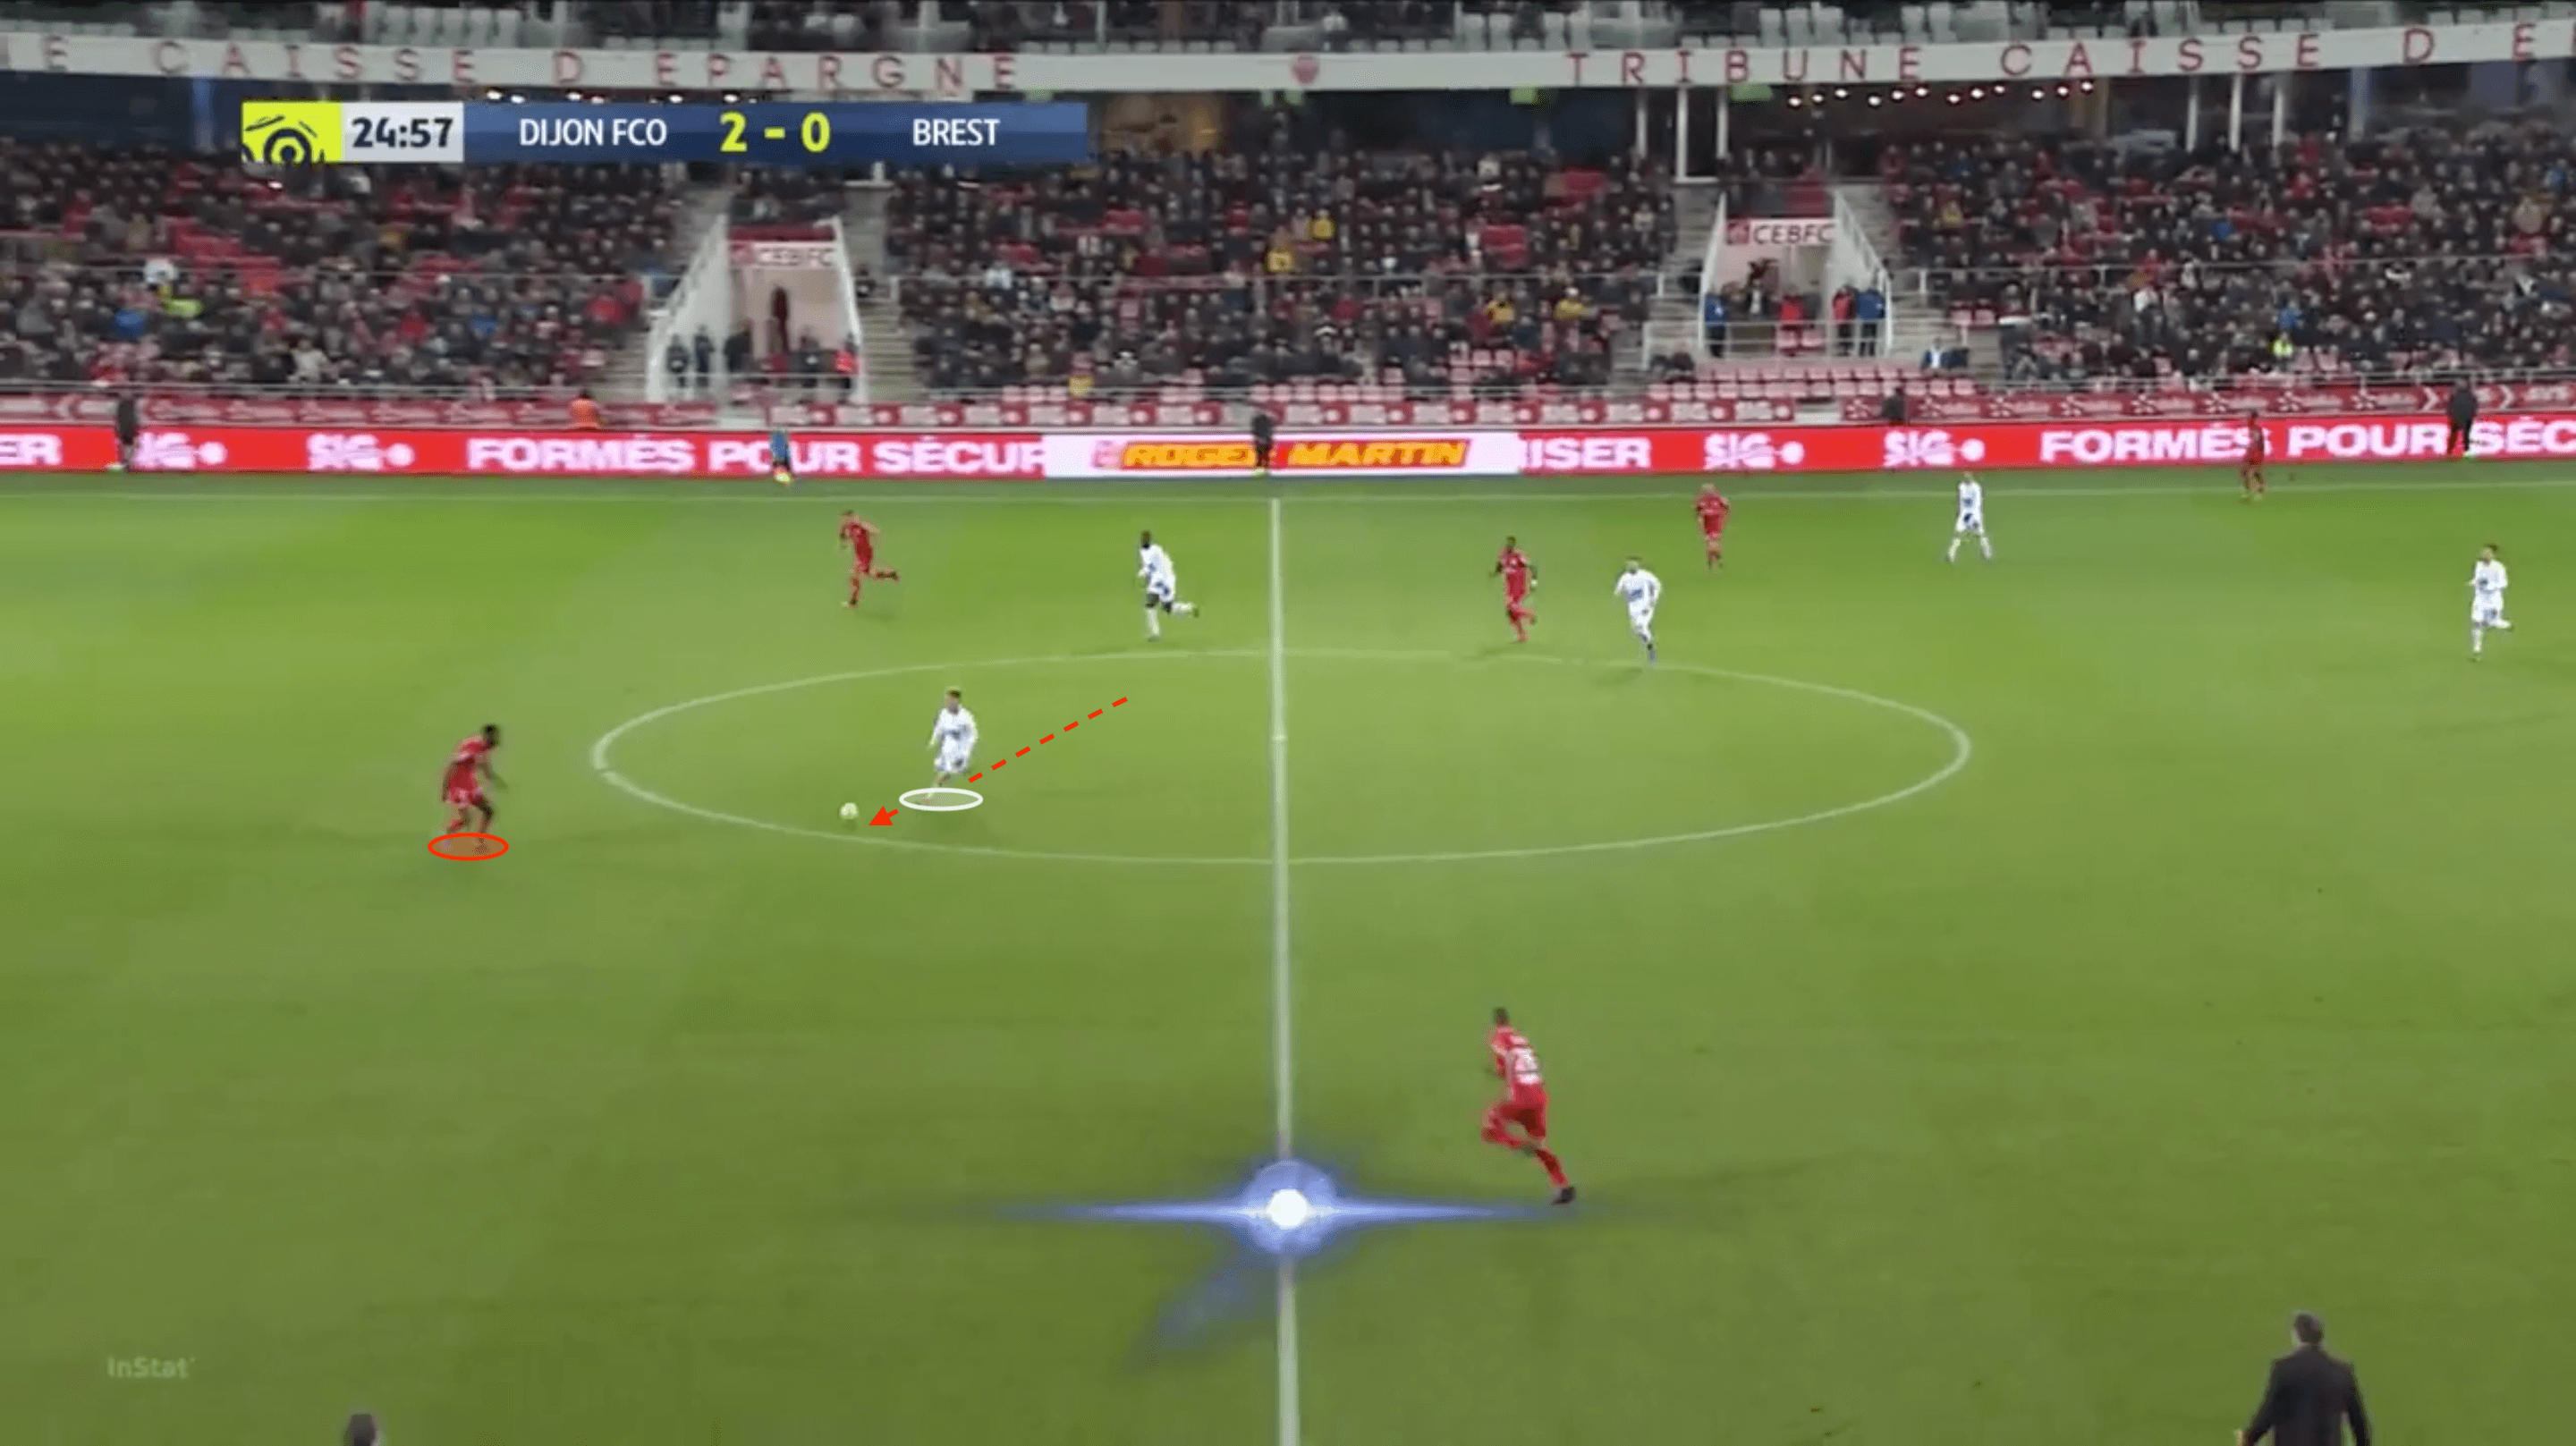 Irvin Cardona at Brest 2019/2020 - scout report - tactical analysis tactics